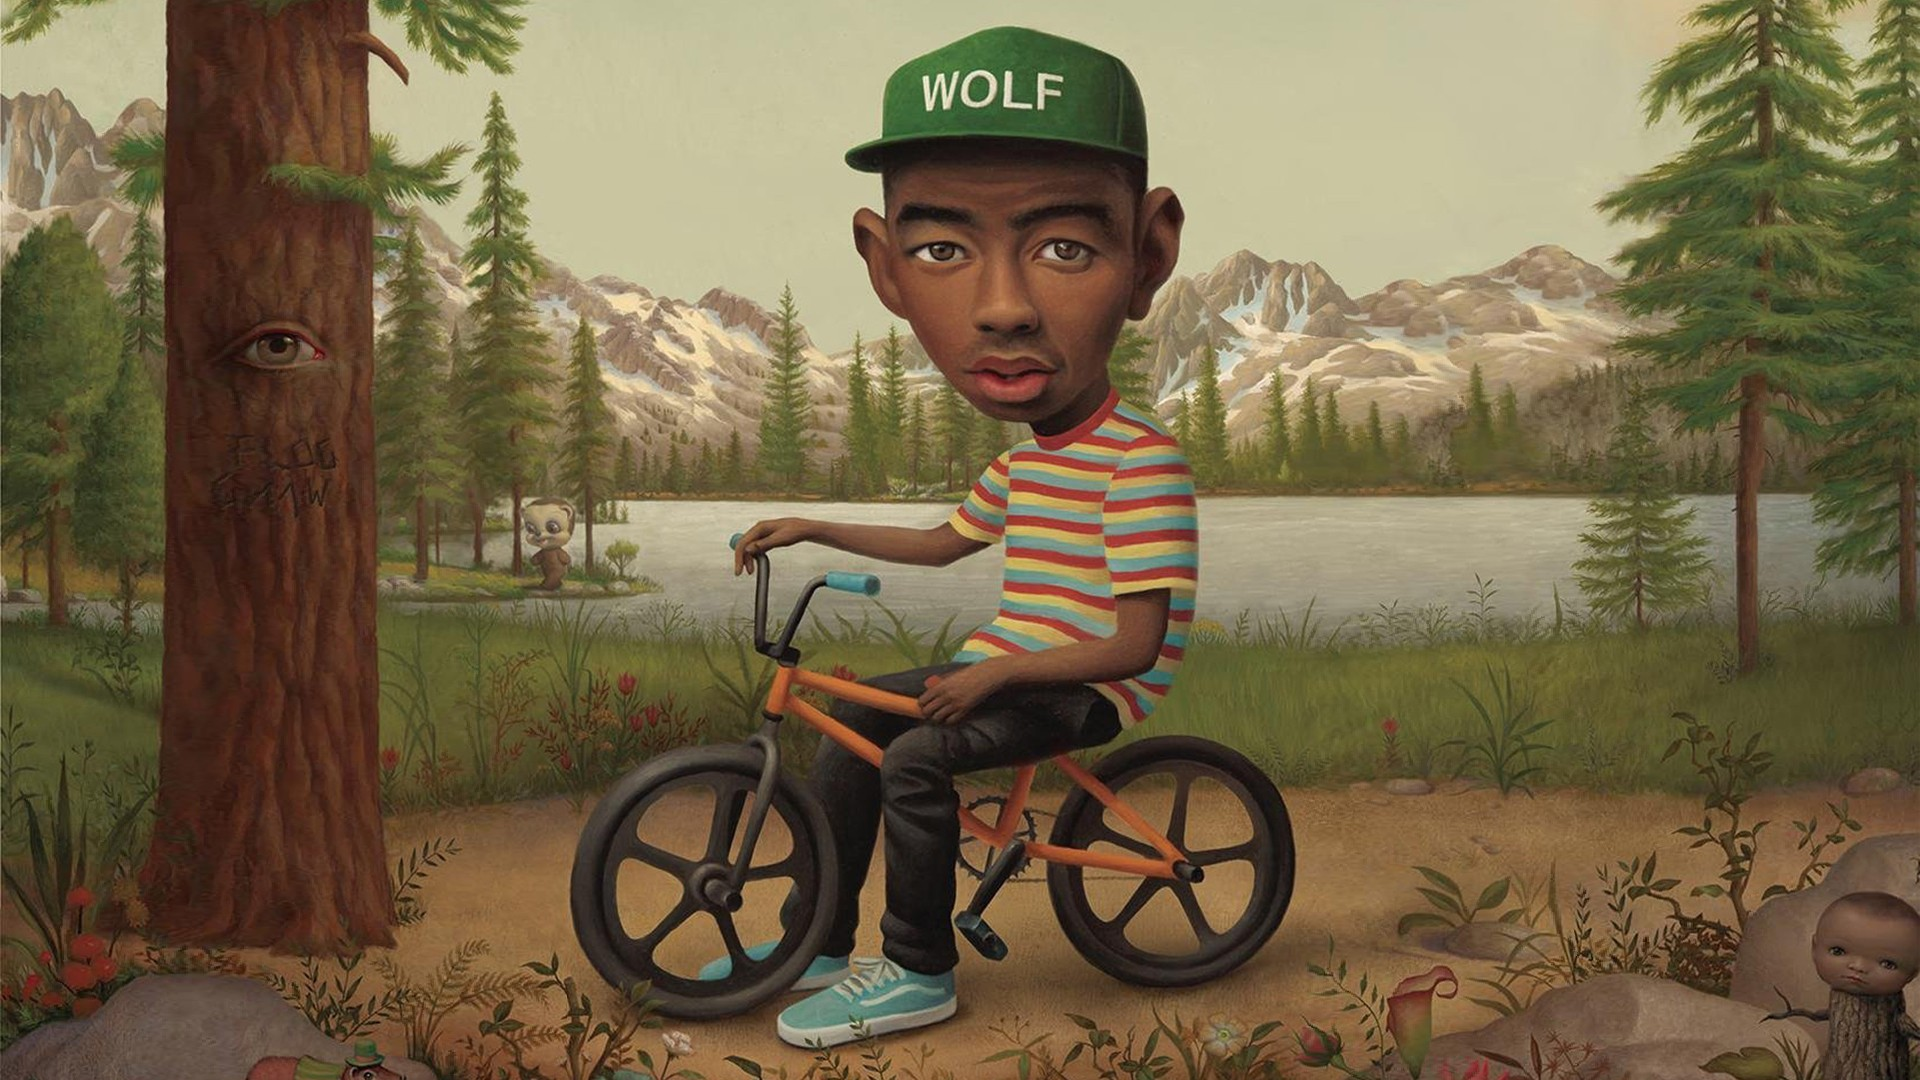 3d Golf Wallpaper For The Home Hip Hop Tyler The Creator Caricature Wallpapers Hd